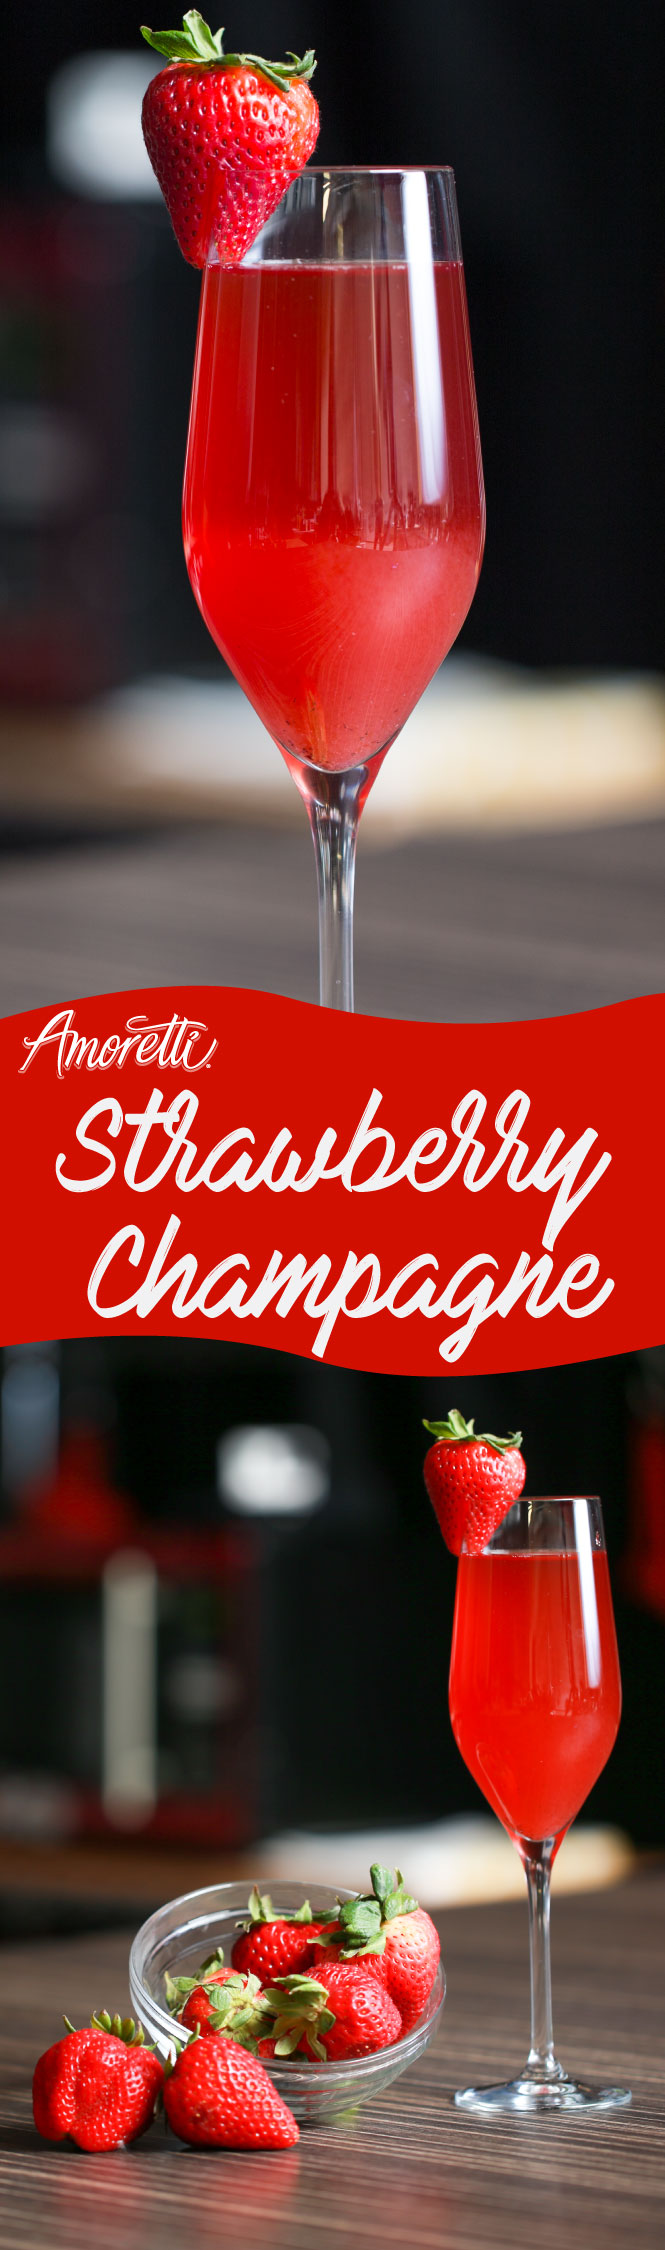 Bring in the New Year with this glamorous Strawberry Champagne!